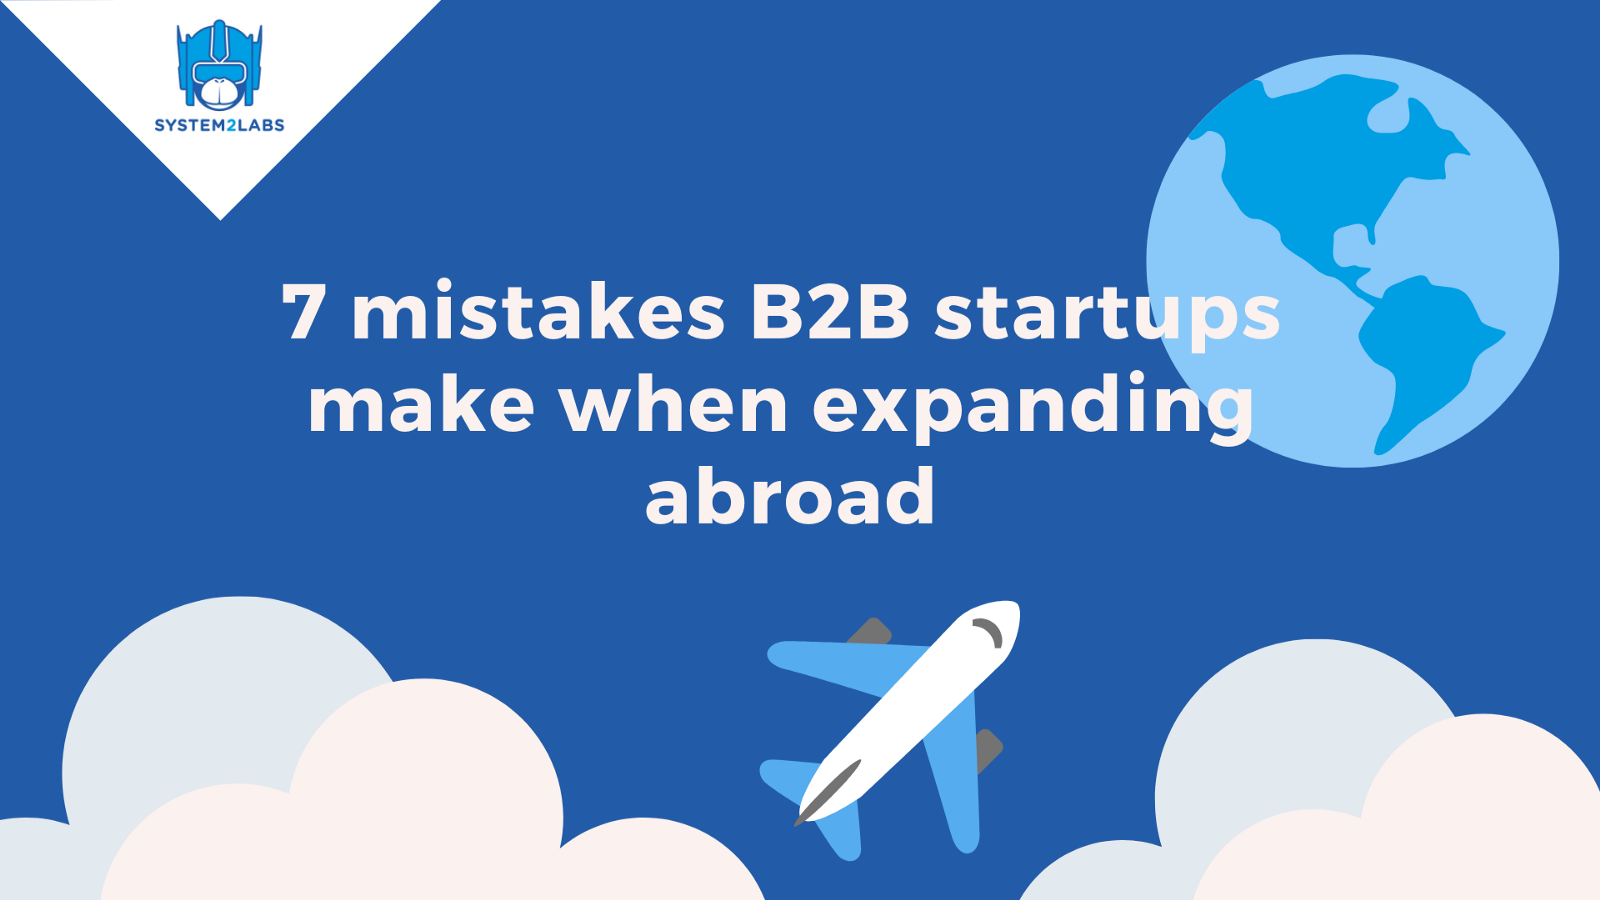 /7-mistakes-b2b-startups-make-when-expanding-abroad-4ab345f7e27e feature image